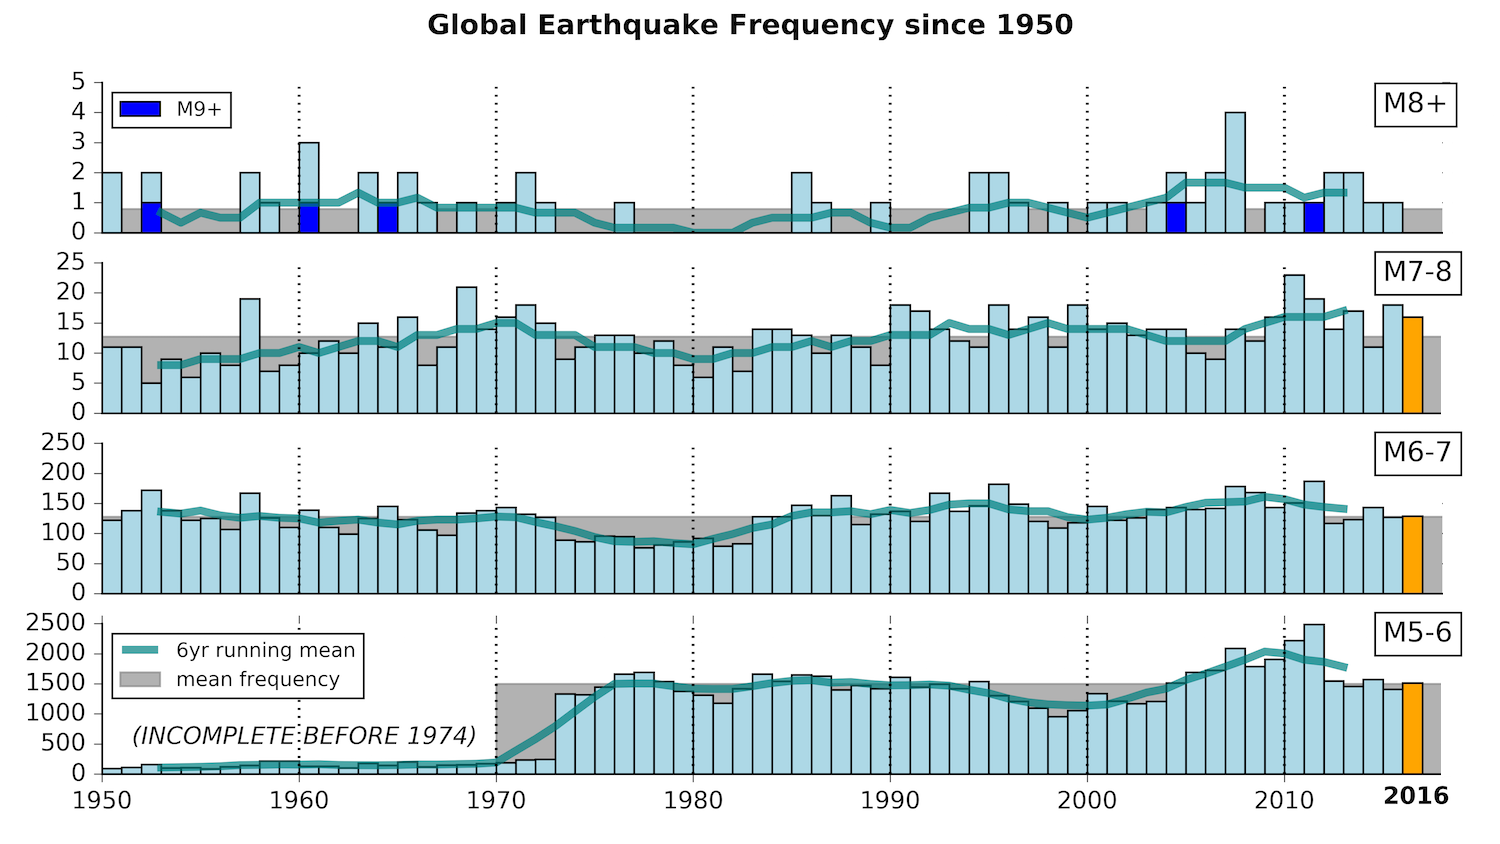 Global seismic record since 1950